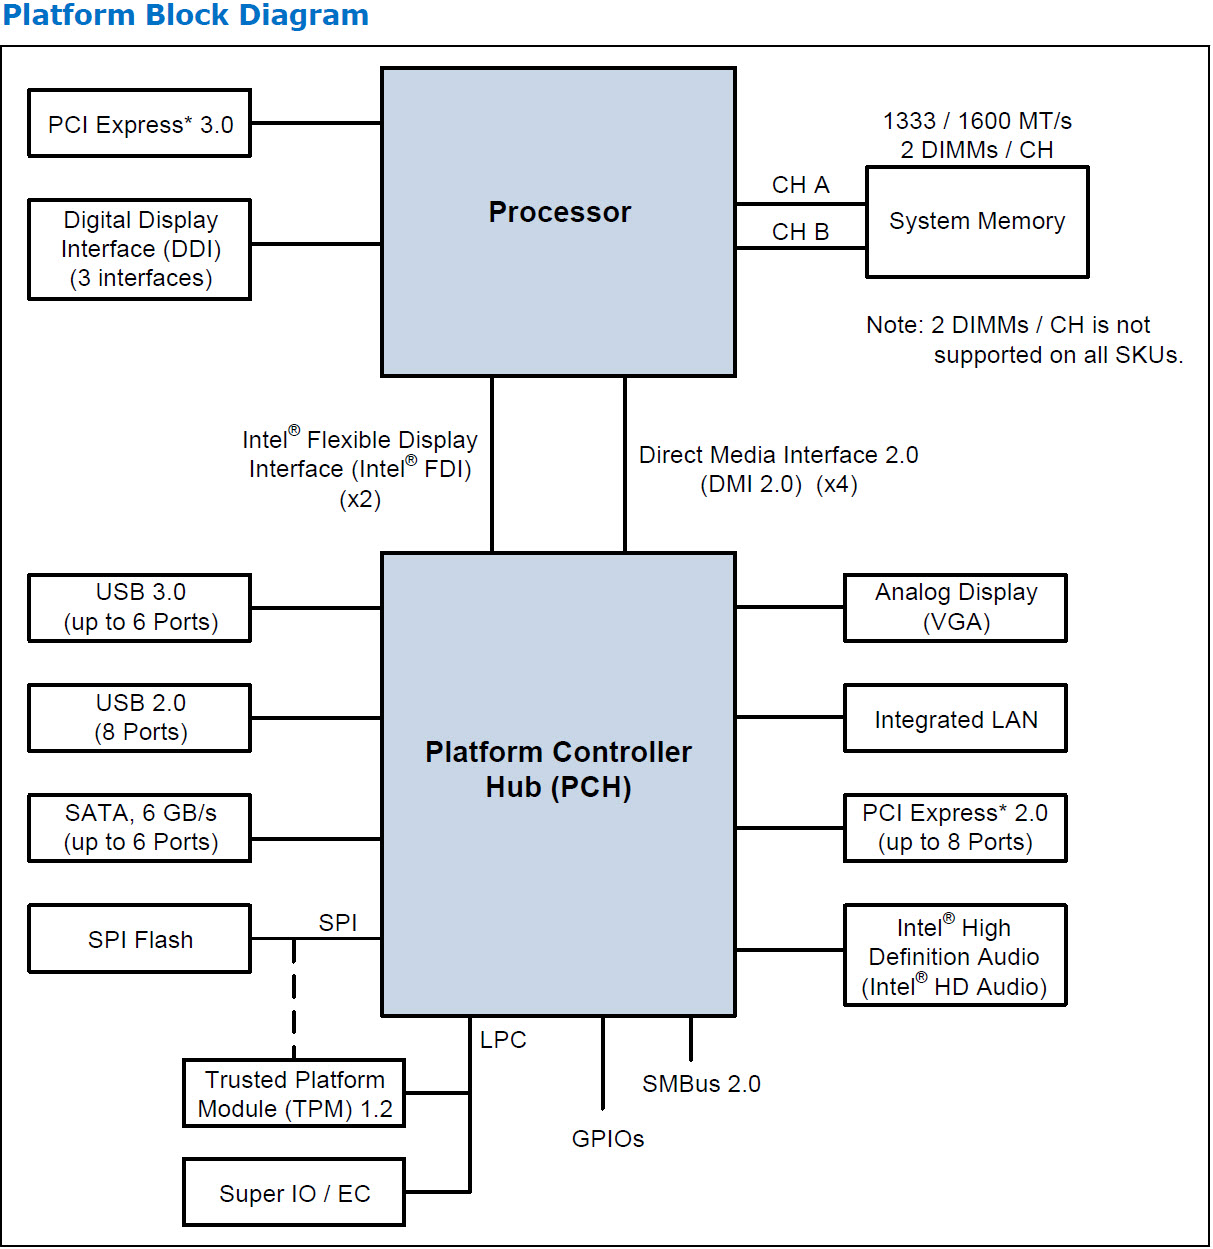 Intel 845 Motherboard Schematic Diagram Wiring And Schematics Ht2000 Monitor Circuit Overview A Novel Way To Mively Improve The Sq Of Puter Audio Streaming Pch